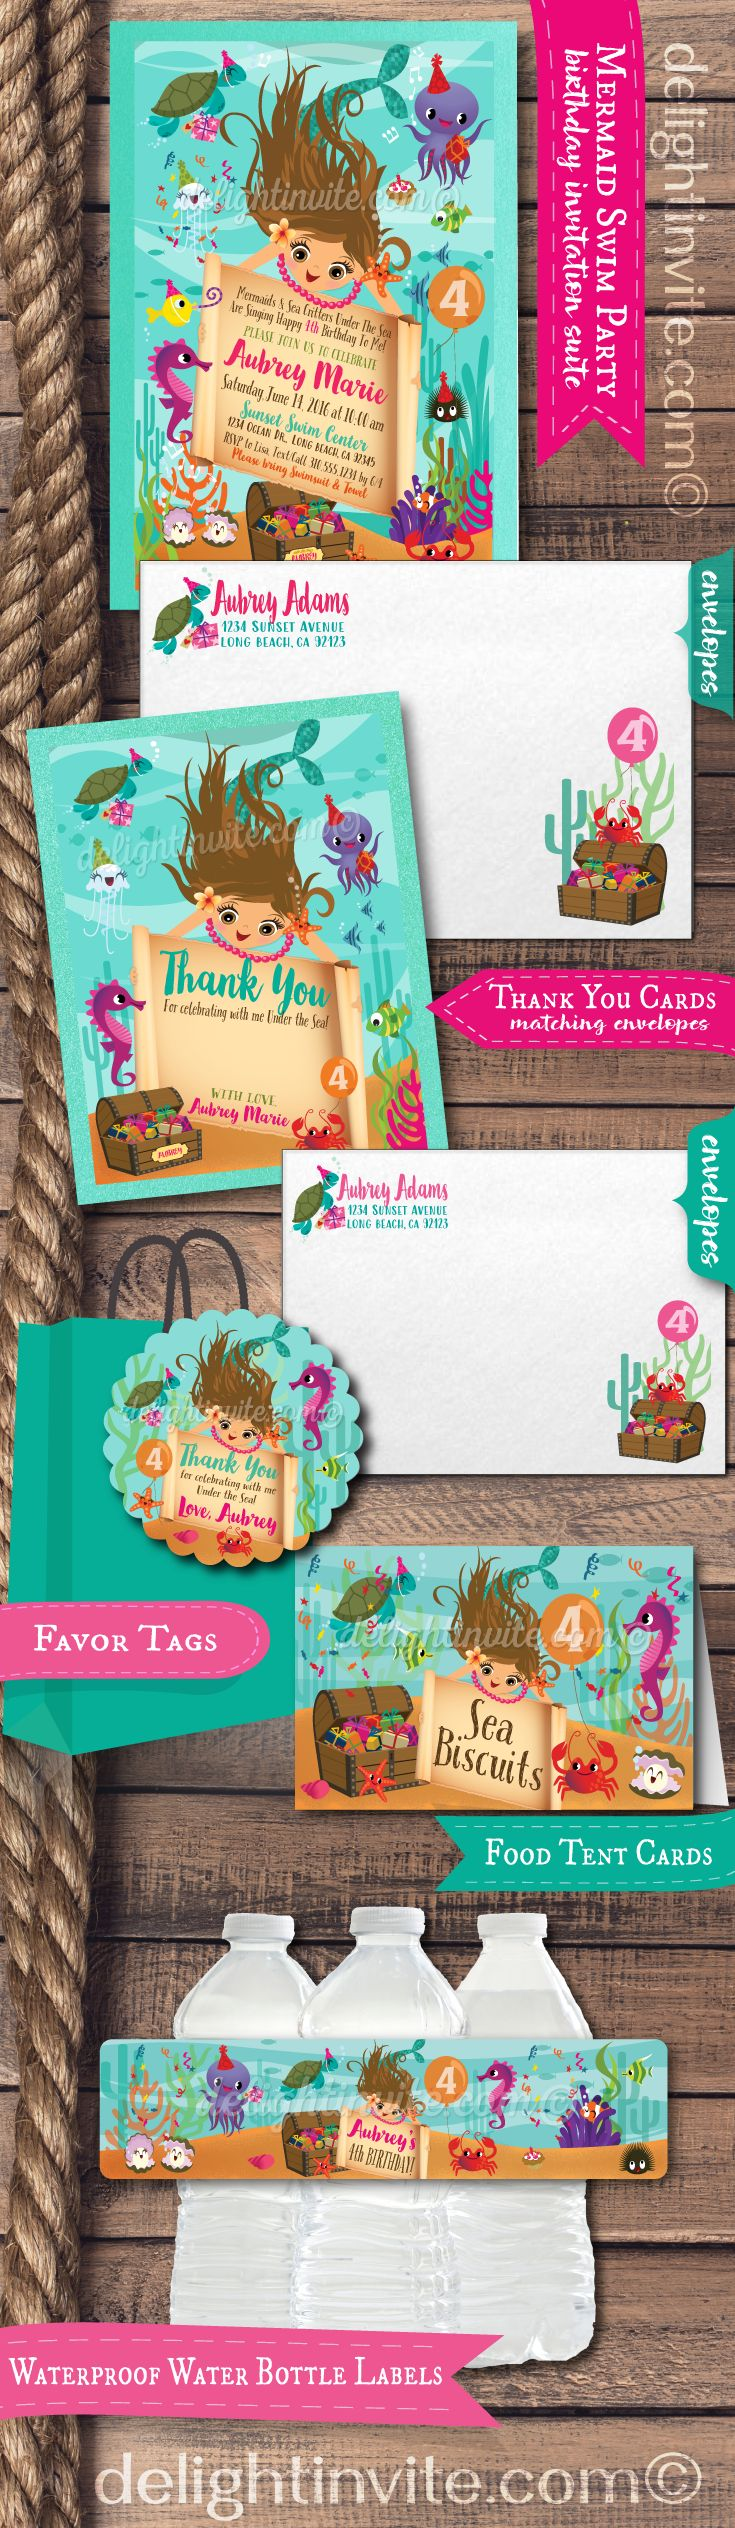 """This darling """"Under the Sea"""" Mermaid theme party set is perfect for your Mermaid inspired swim party! This is also a great idea for a birthday party at an aquarium. Expertly printed on metallic shimmer paper and artfully hand mounted on gorgeous sparkly aqua blue card stock, this mermaid party set is stunning in person! Truly unique and a must have for a mermaid theme party."""